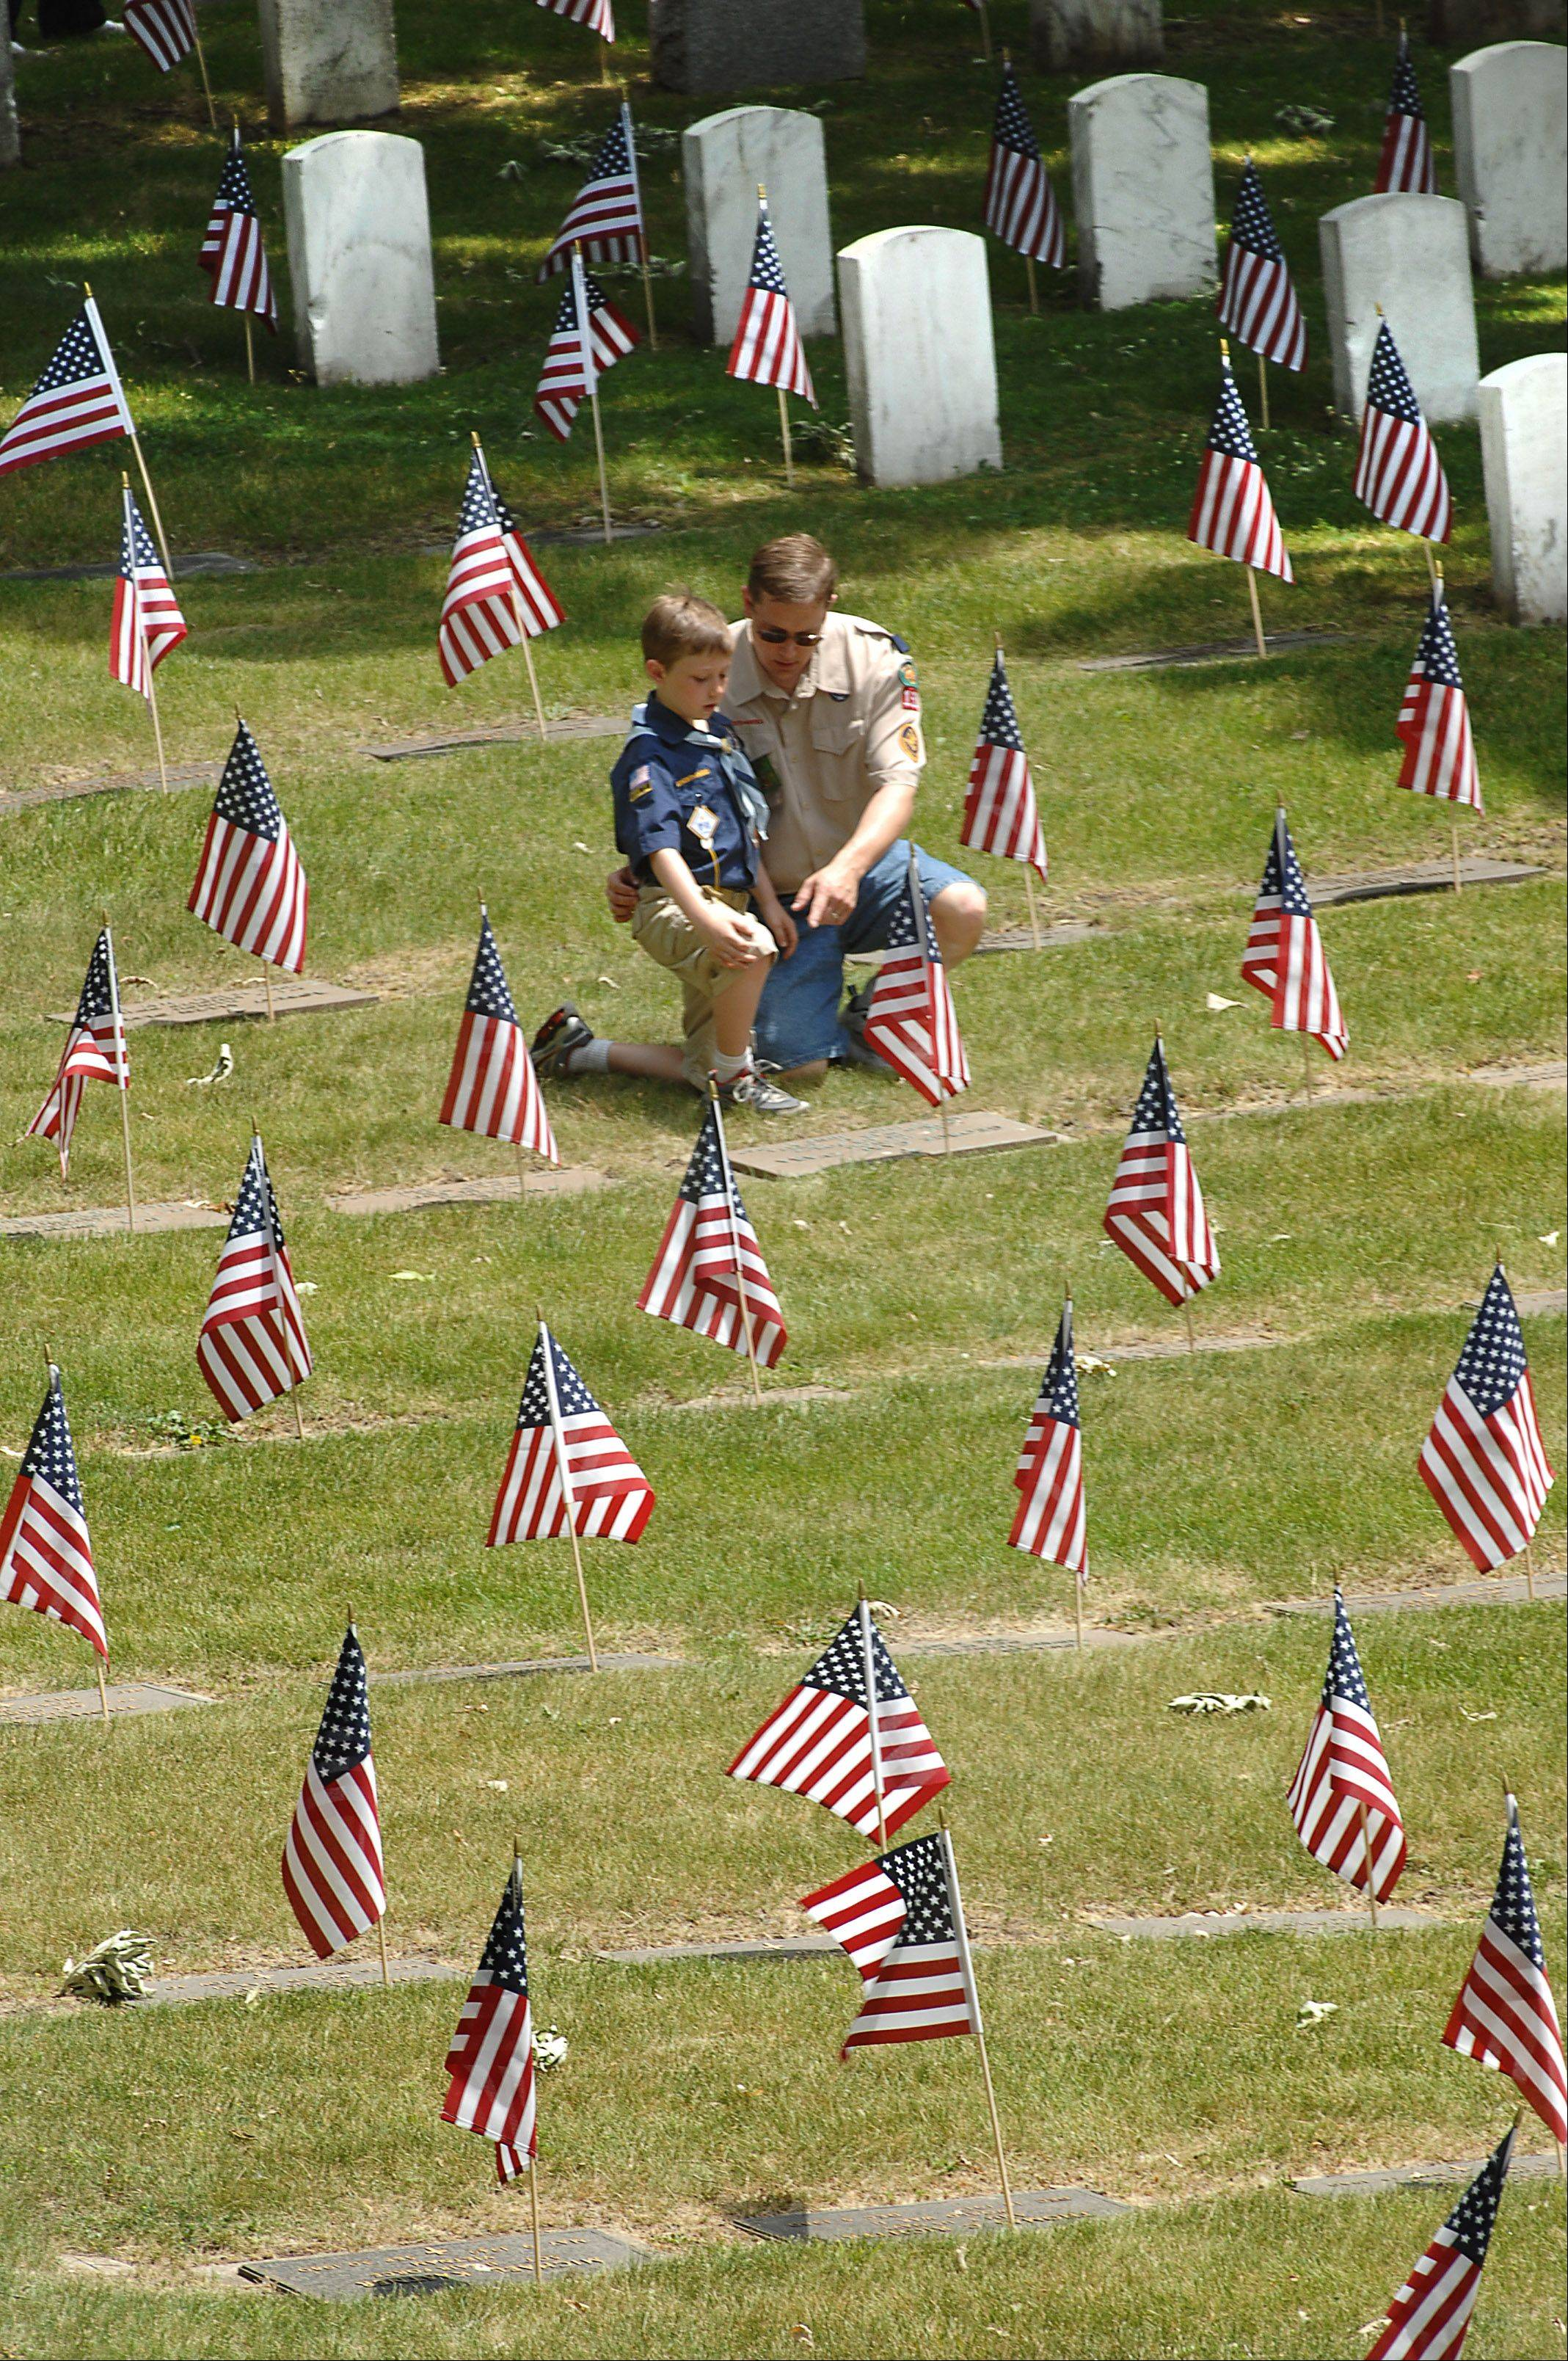 Cub Scout Collin Hagen, 8, and his father Jerry of South Elgin spend time with soldiers graves in the Bluff City Cemetery following the Memorial Day ceremony in Elgin.